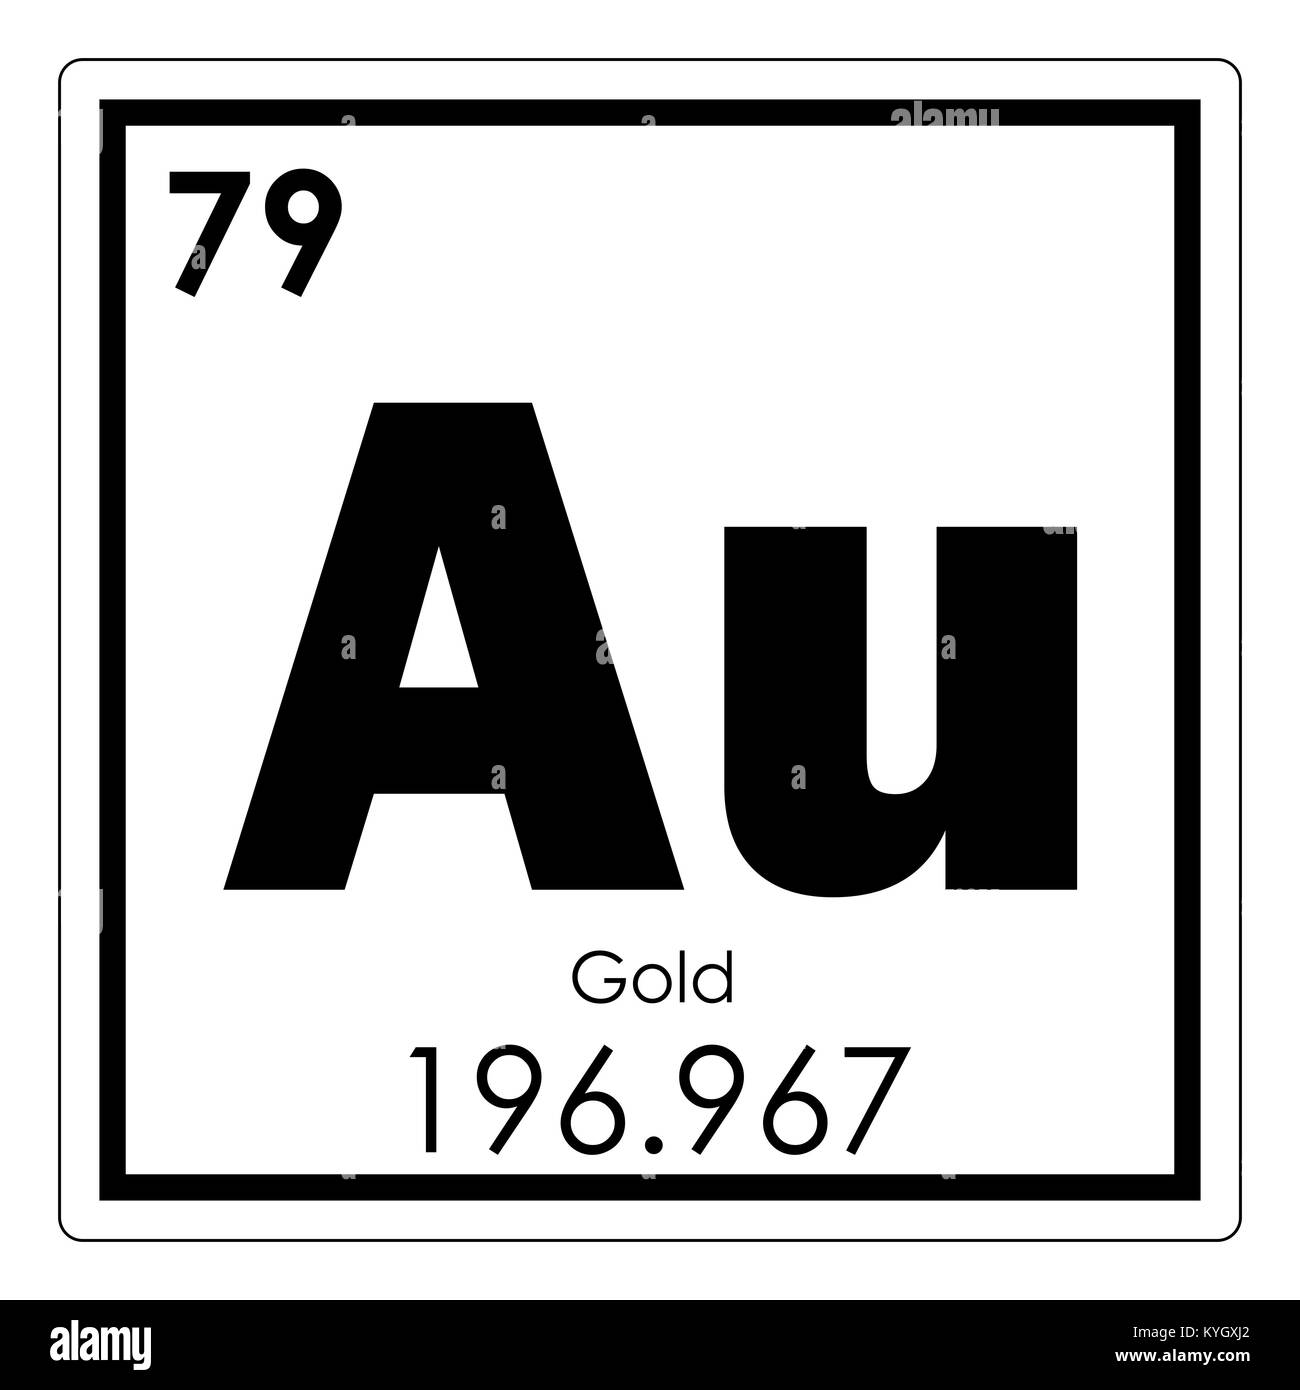 Gold Chemical Symbol Gallery Meaning Of Text Symbols